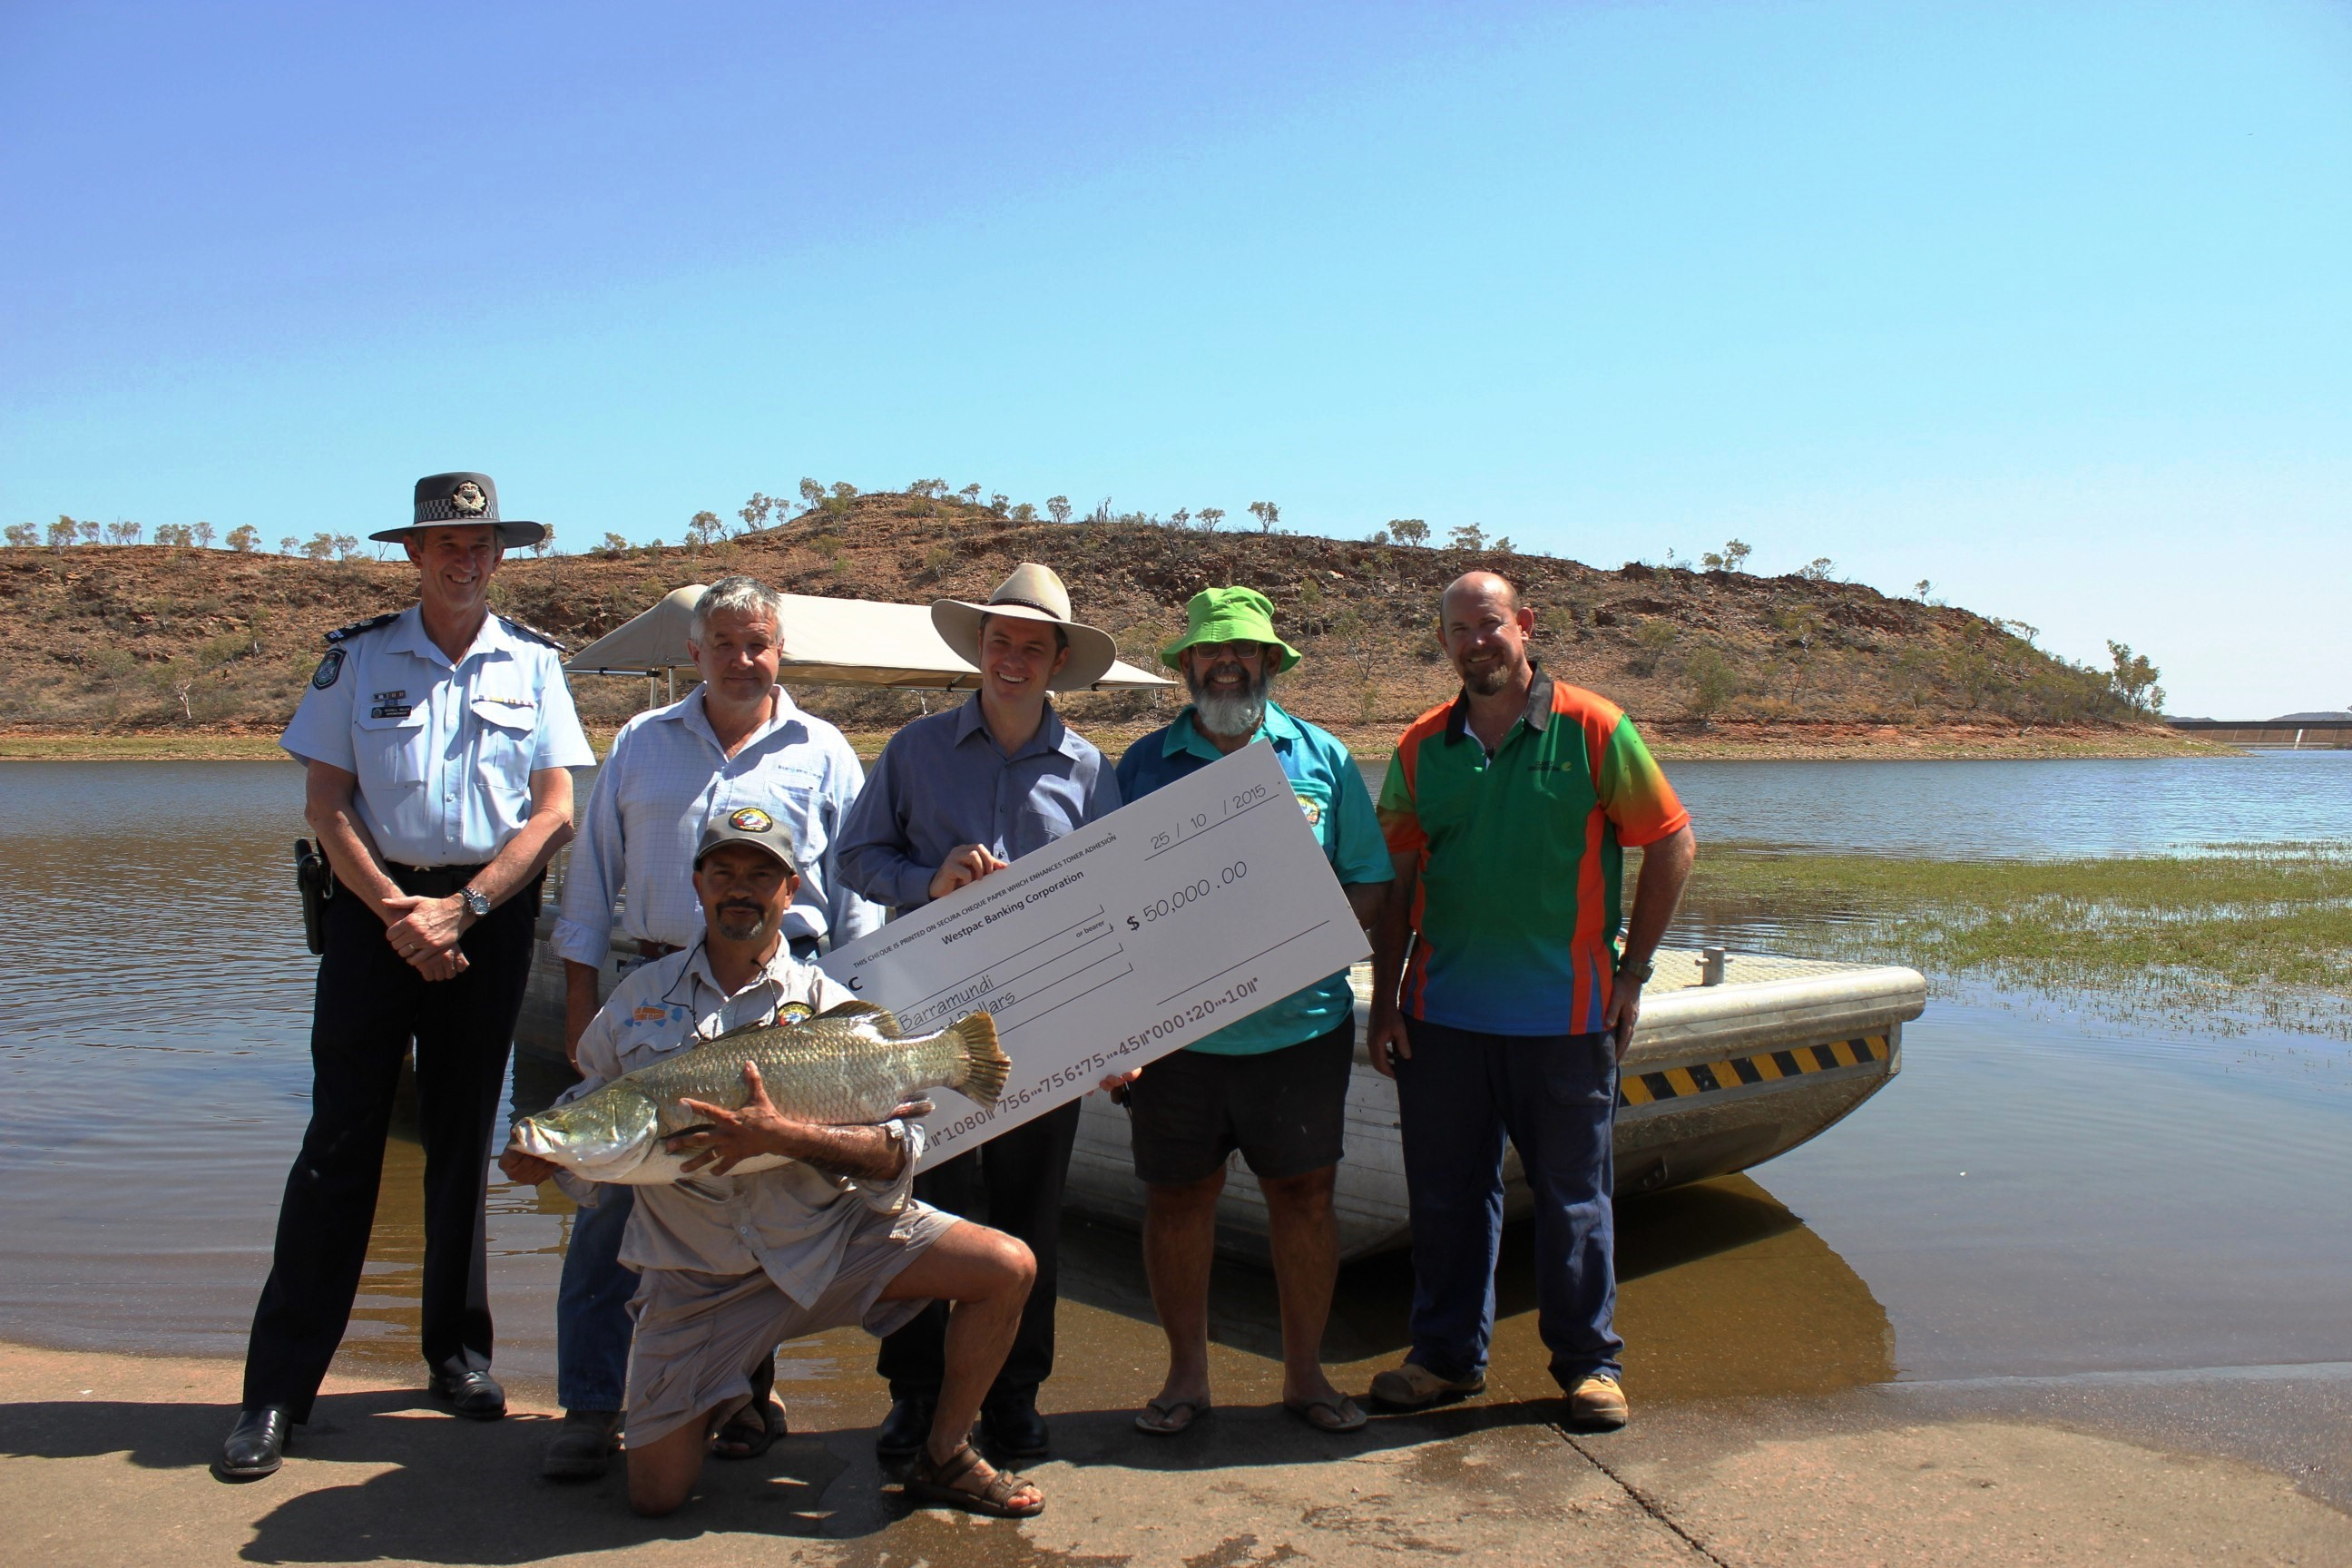 L-R Russell Miller- Superintendent District Officer Mount Isa Police, Cr Brett Peterson- Deputy Mayor Mount Isa City Council, Stephen Farrelly Chief Executive Mount Isa Water Board, Steve Farnsworth- Co-Event Manager Lake Moondarra Fishing Classic, Dave Clancy- Director Clancy Corporation and George Fortune Co-Event Manager Lake Moondarra Fishing Classic (inset) with $50,000 Mount Isa Water Board Tagged Barra 'Fat Albert' prior to release at Lake Moondarra.